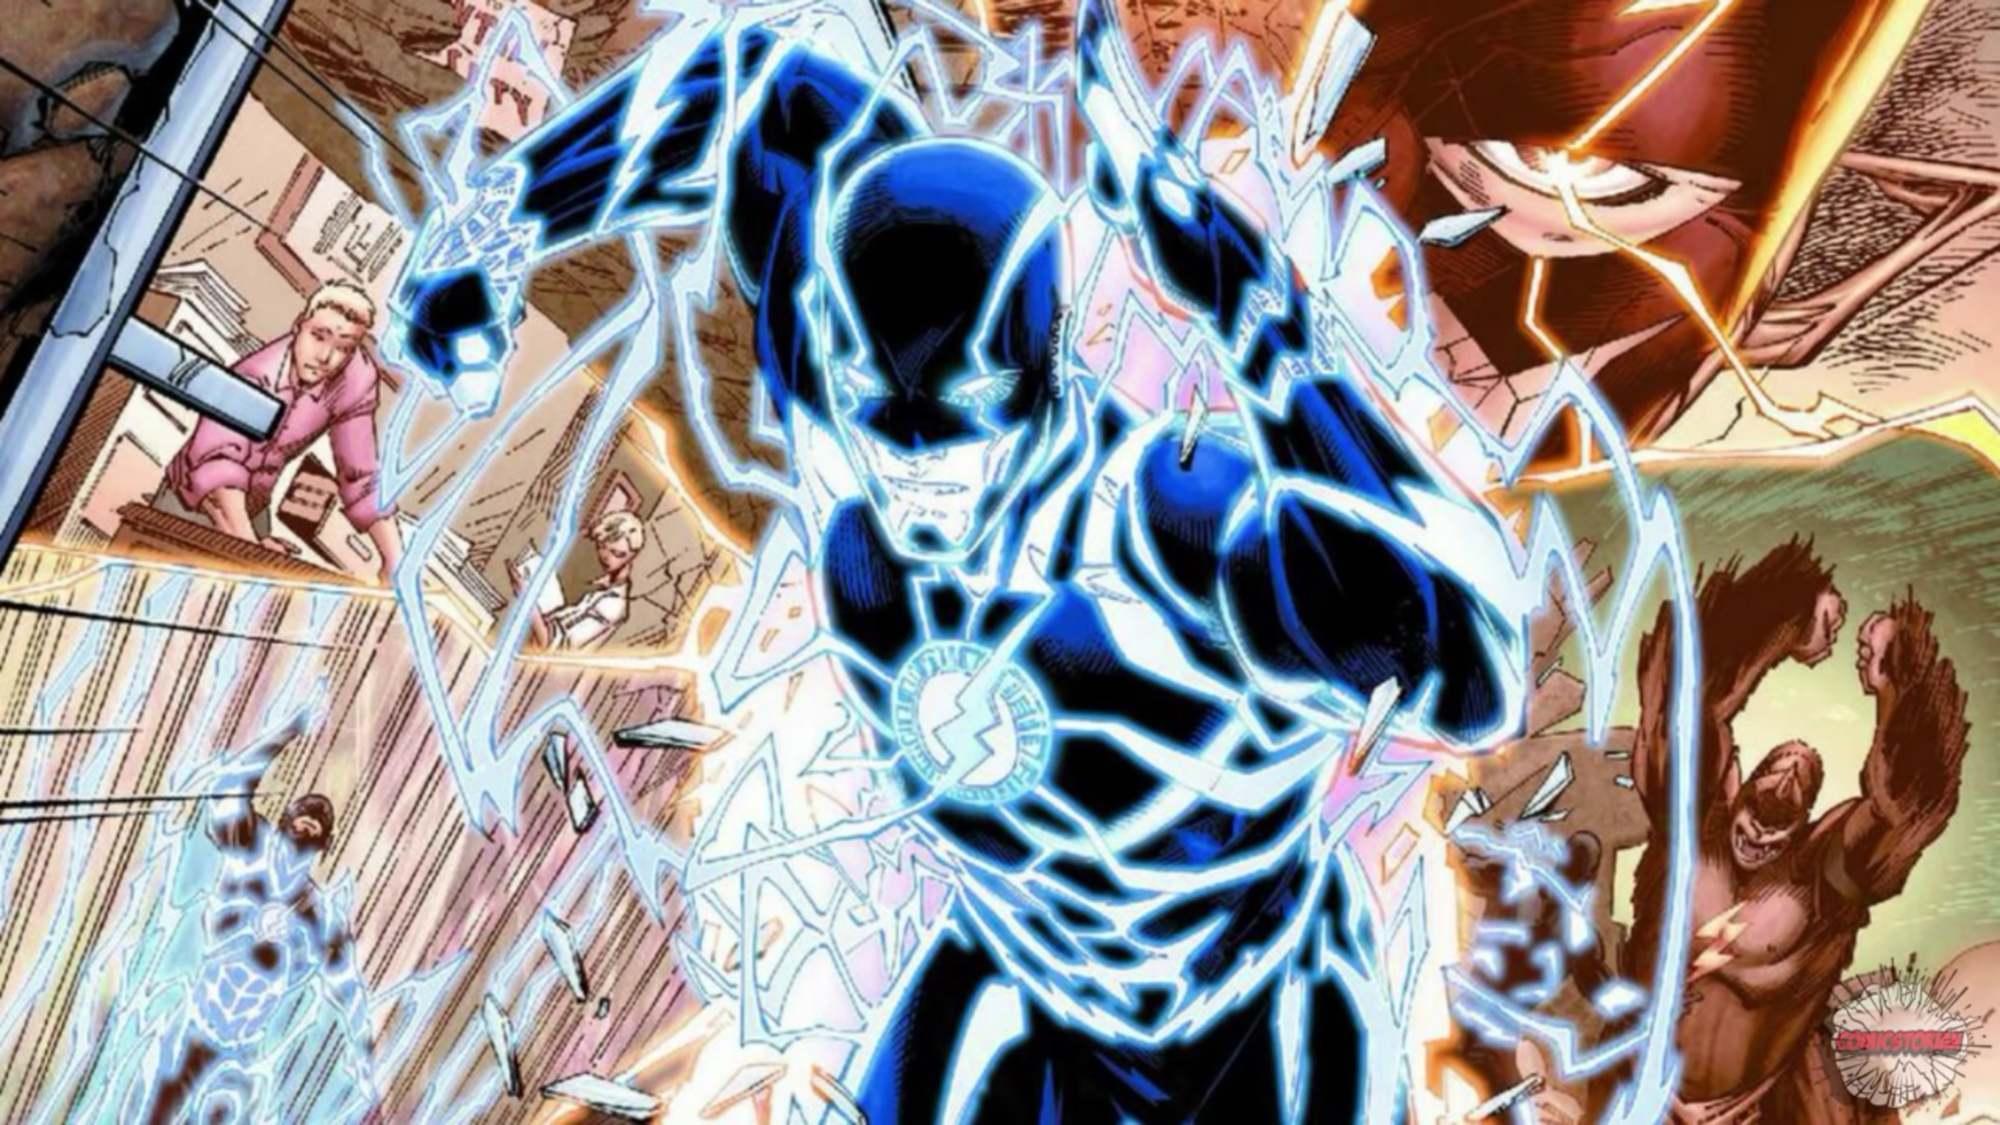 Is future flash dying in this form or state or is it under his control?